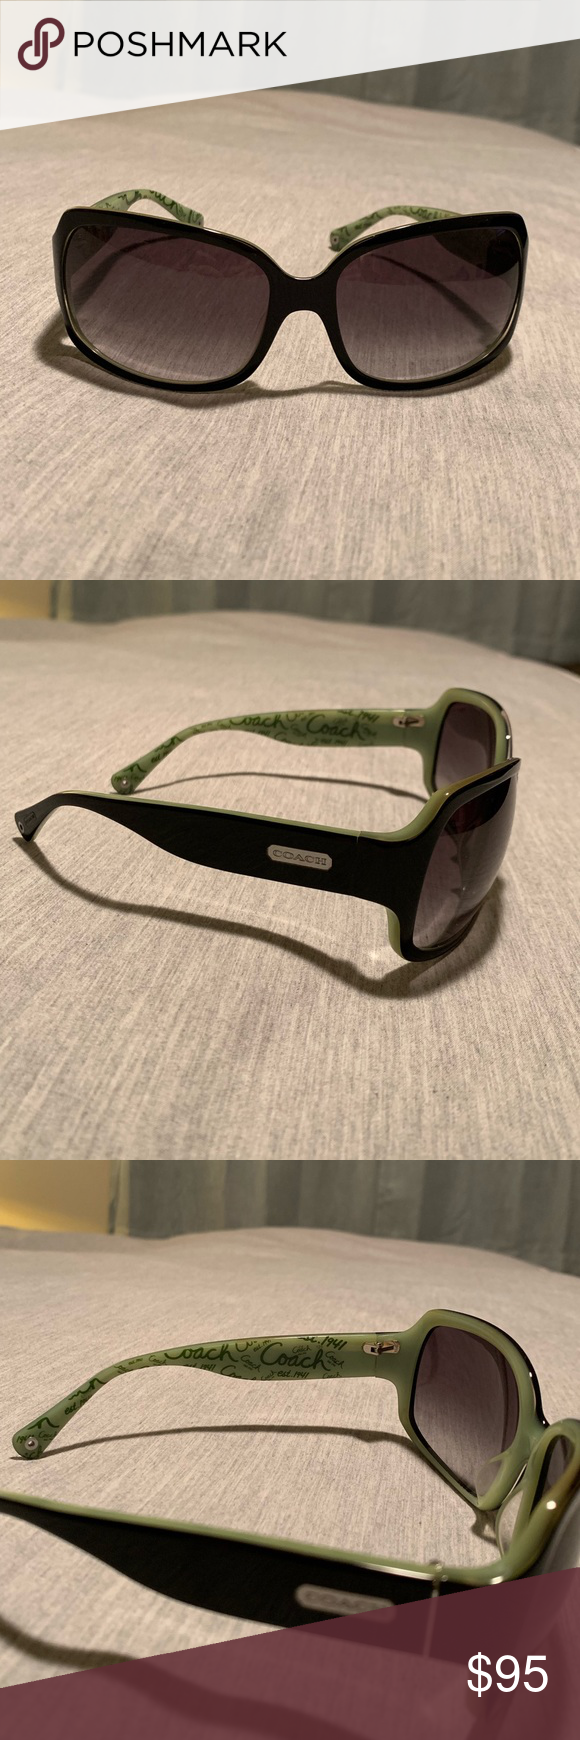 e10b151b646a 😎☀️Authentic Coach Black & Green Sunglasses Gorgeous square frame Authentic  Coach black sunglasses with